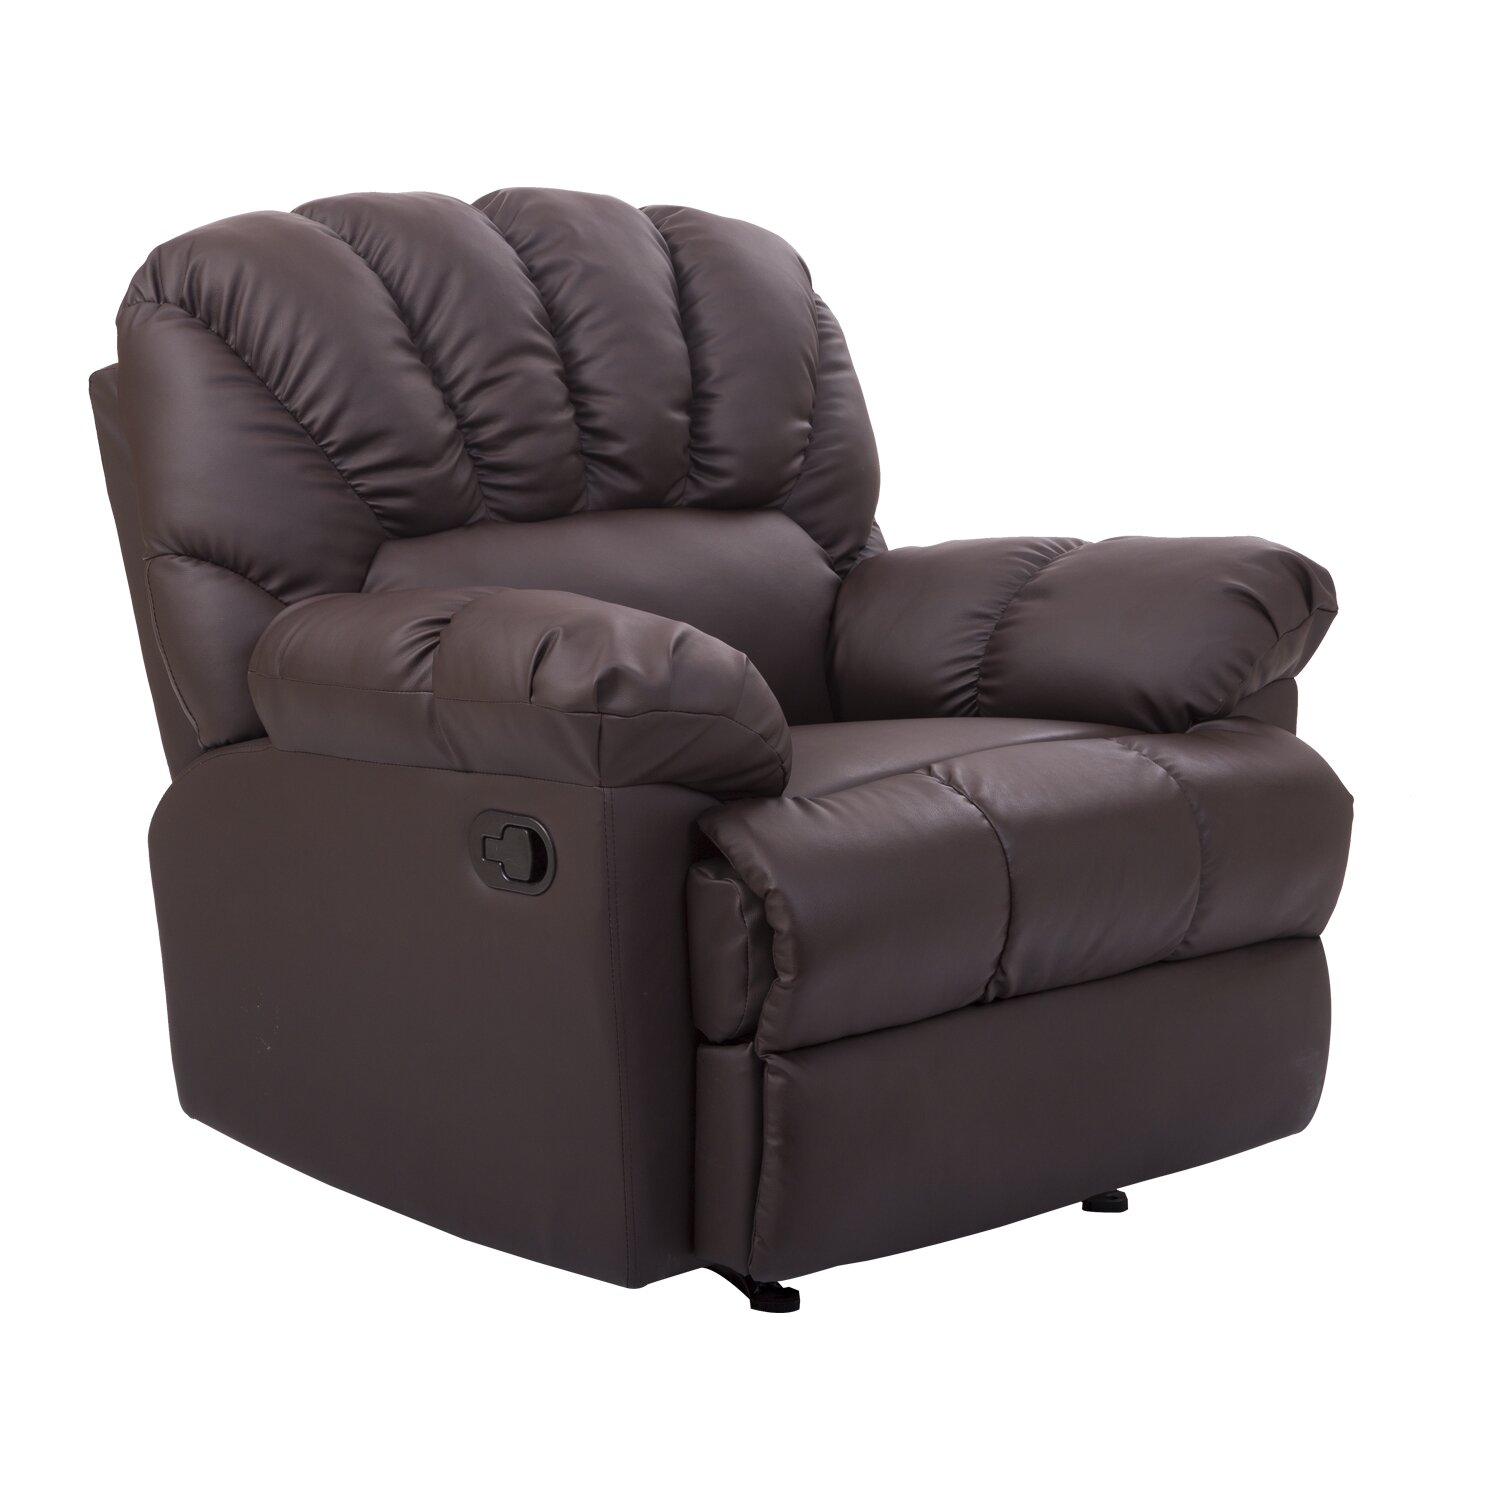 Homcom Rocking Sofa Recliner Amp Reviews Wayfair